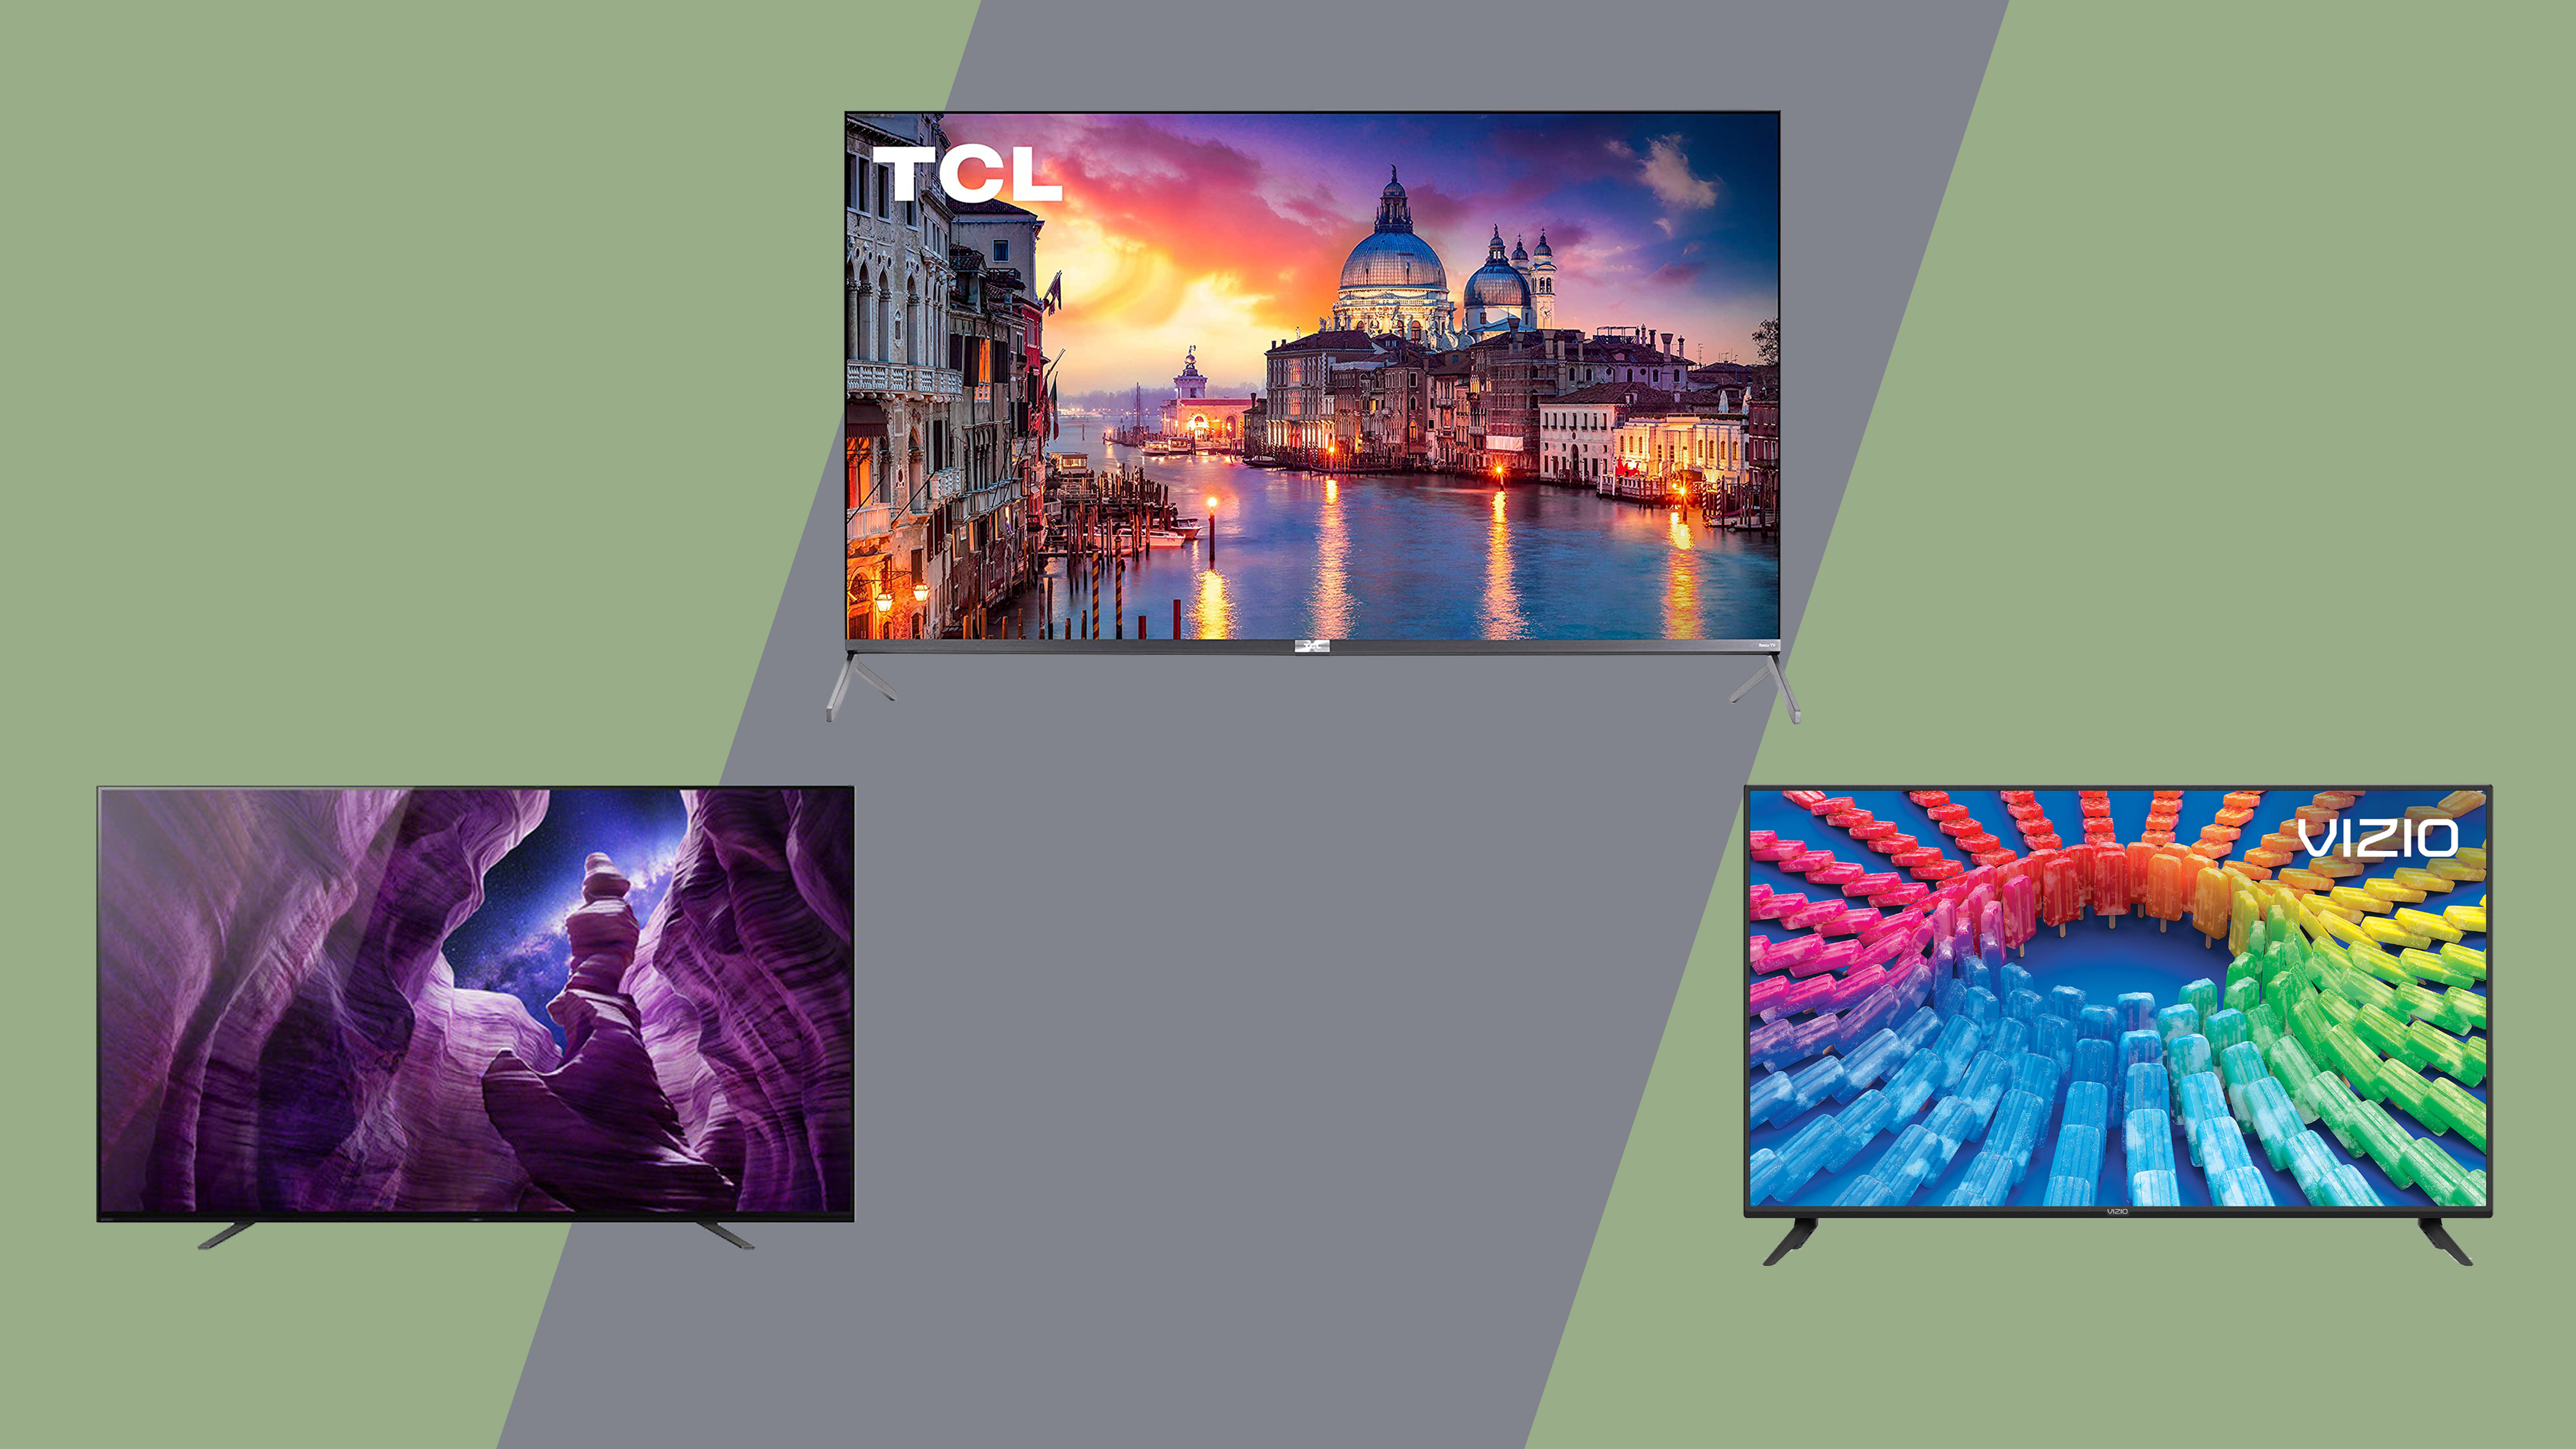 Best Tvs 2020 We Tested Tcl Sony Vizio Samsung And More Cnn Underscored